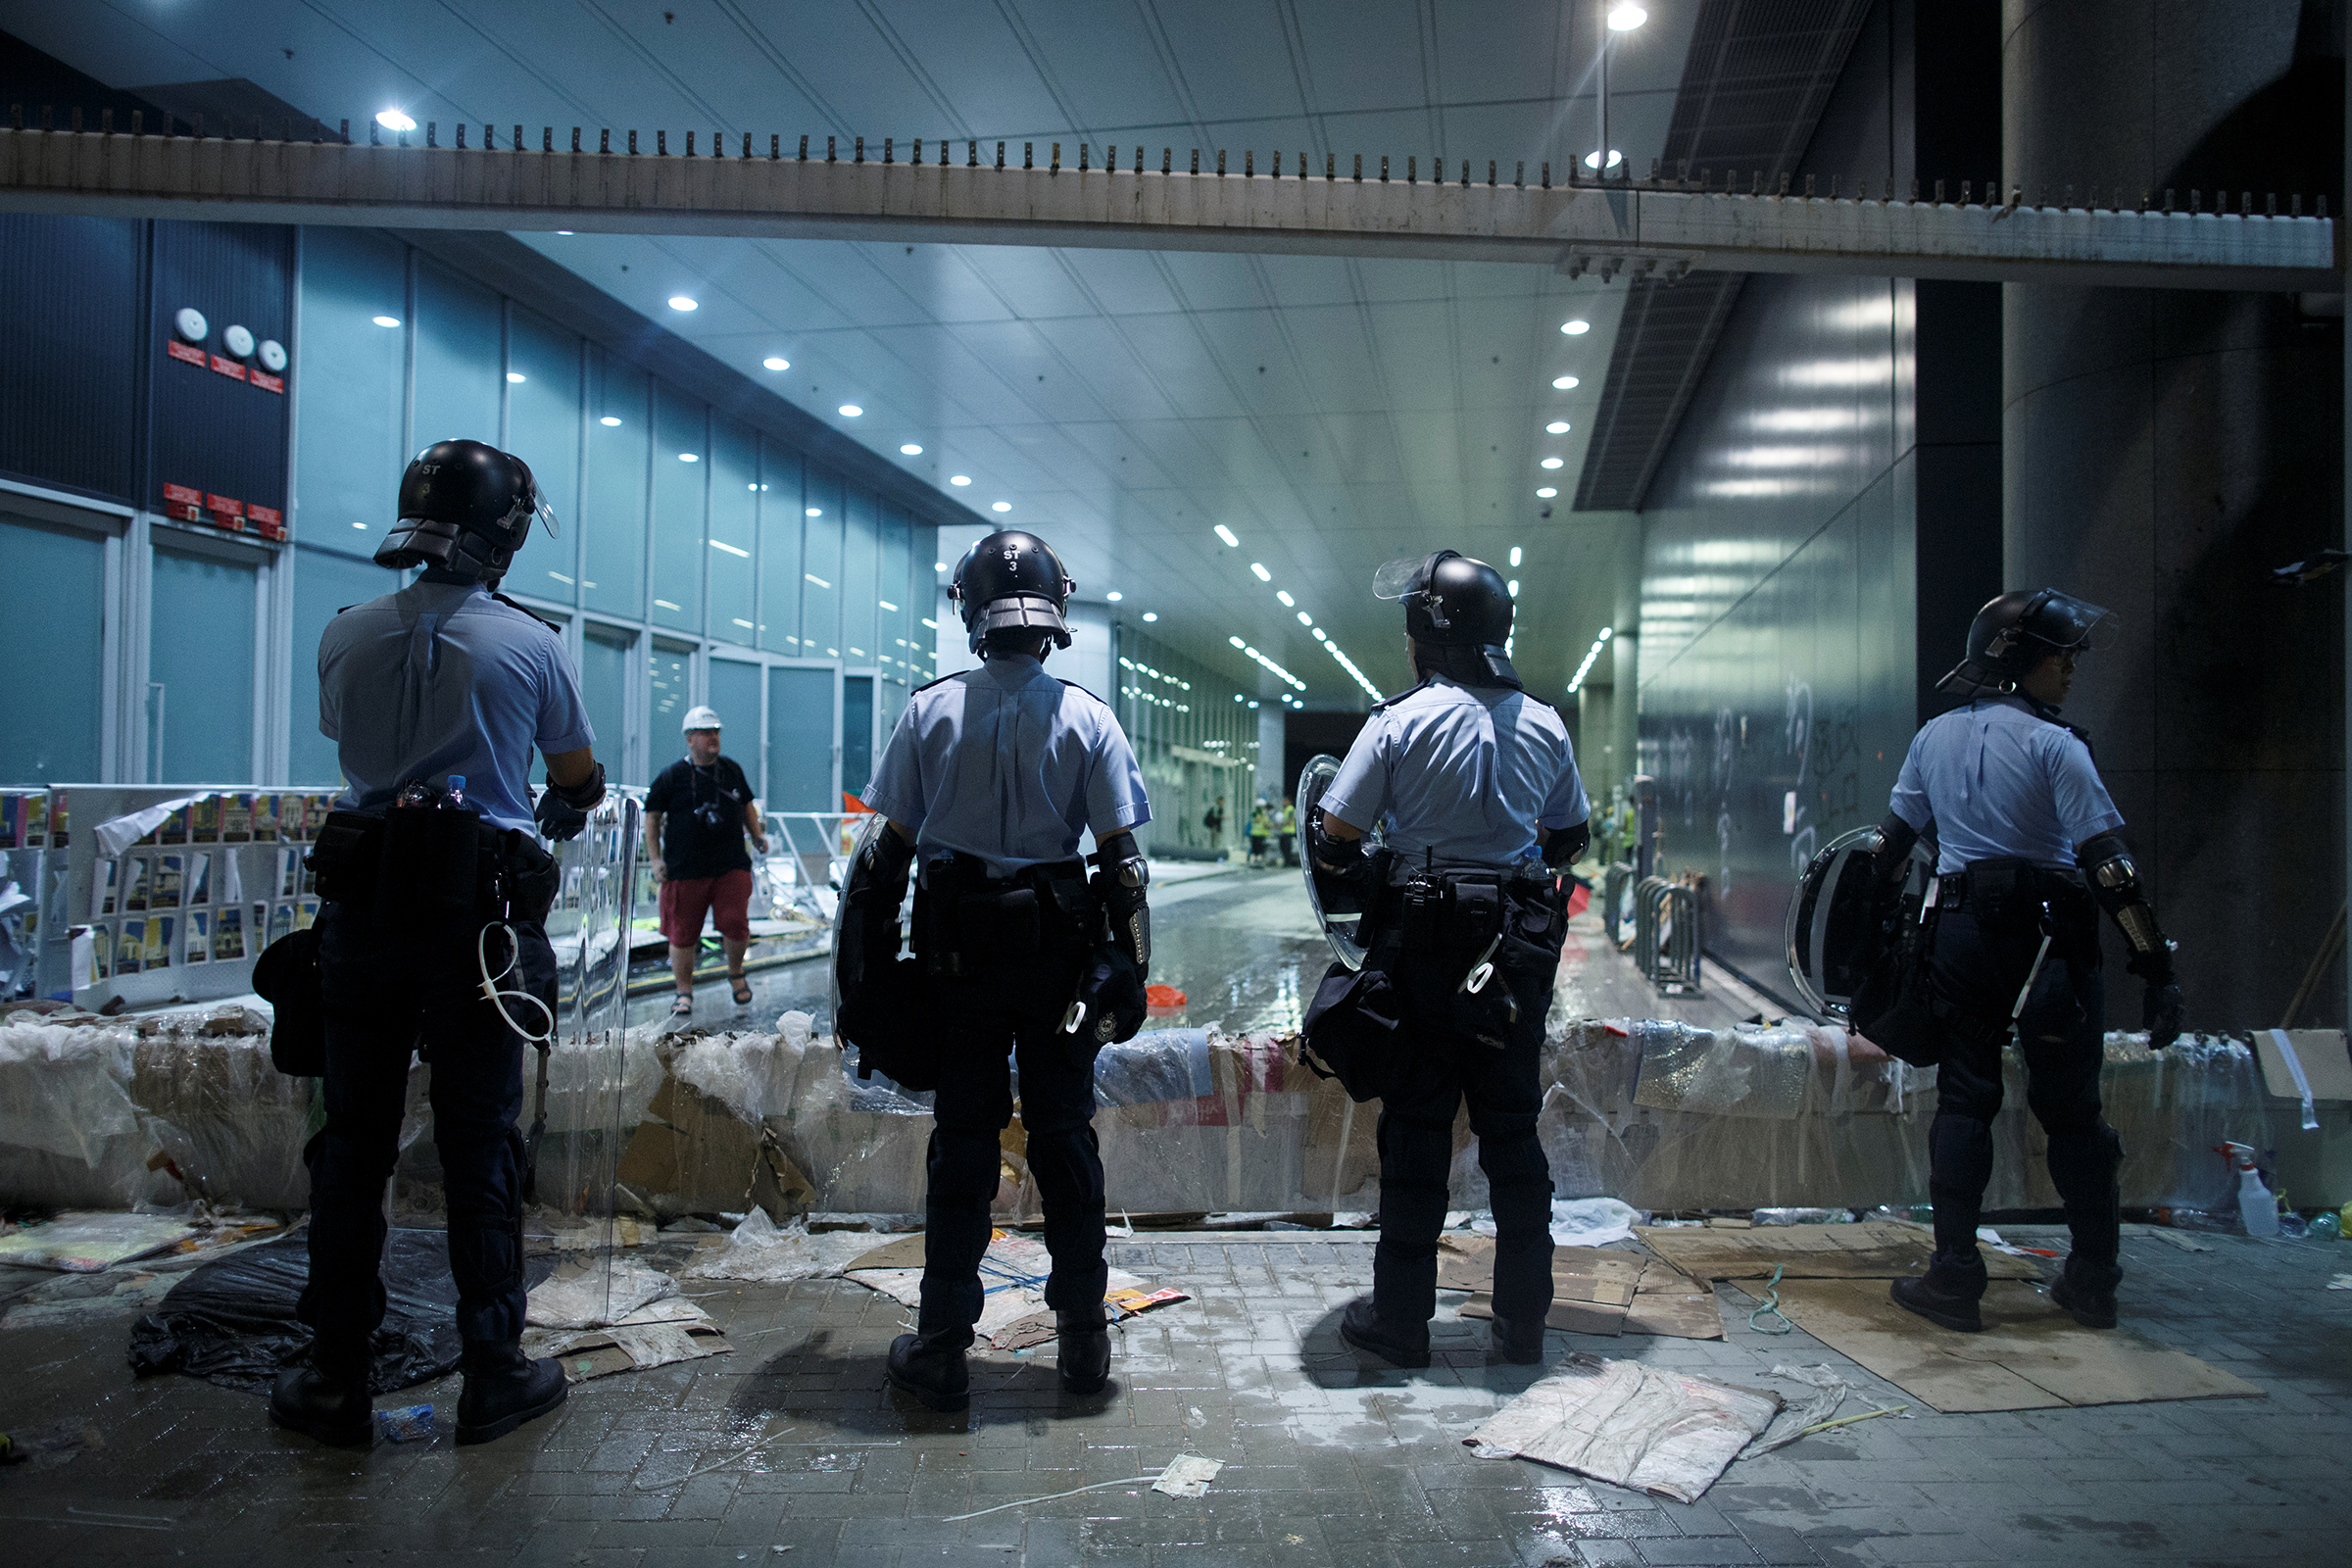 Riot police are positioned outside the Legislative Council building, after protesters stormed the complex on the anniversary of Hong Kong's handover to China, in Hong Kong on July 2, 2019.